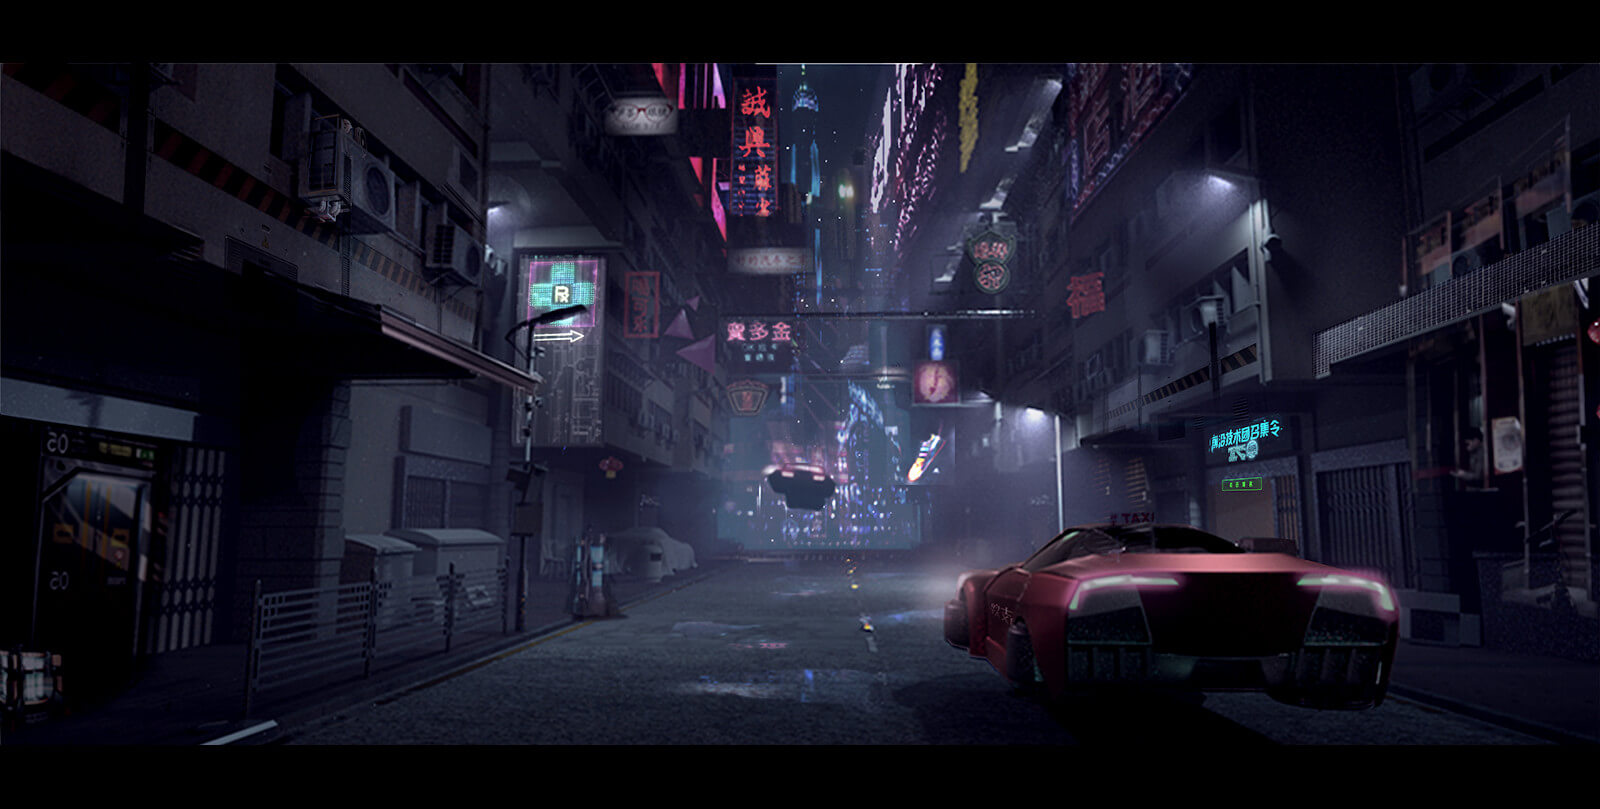 Concept art - hovering cars on futuristic city street